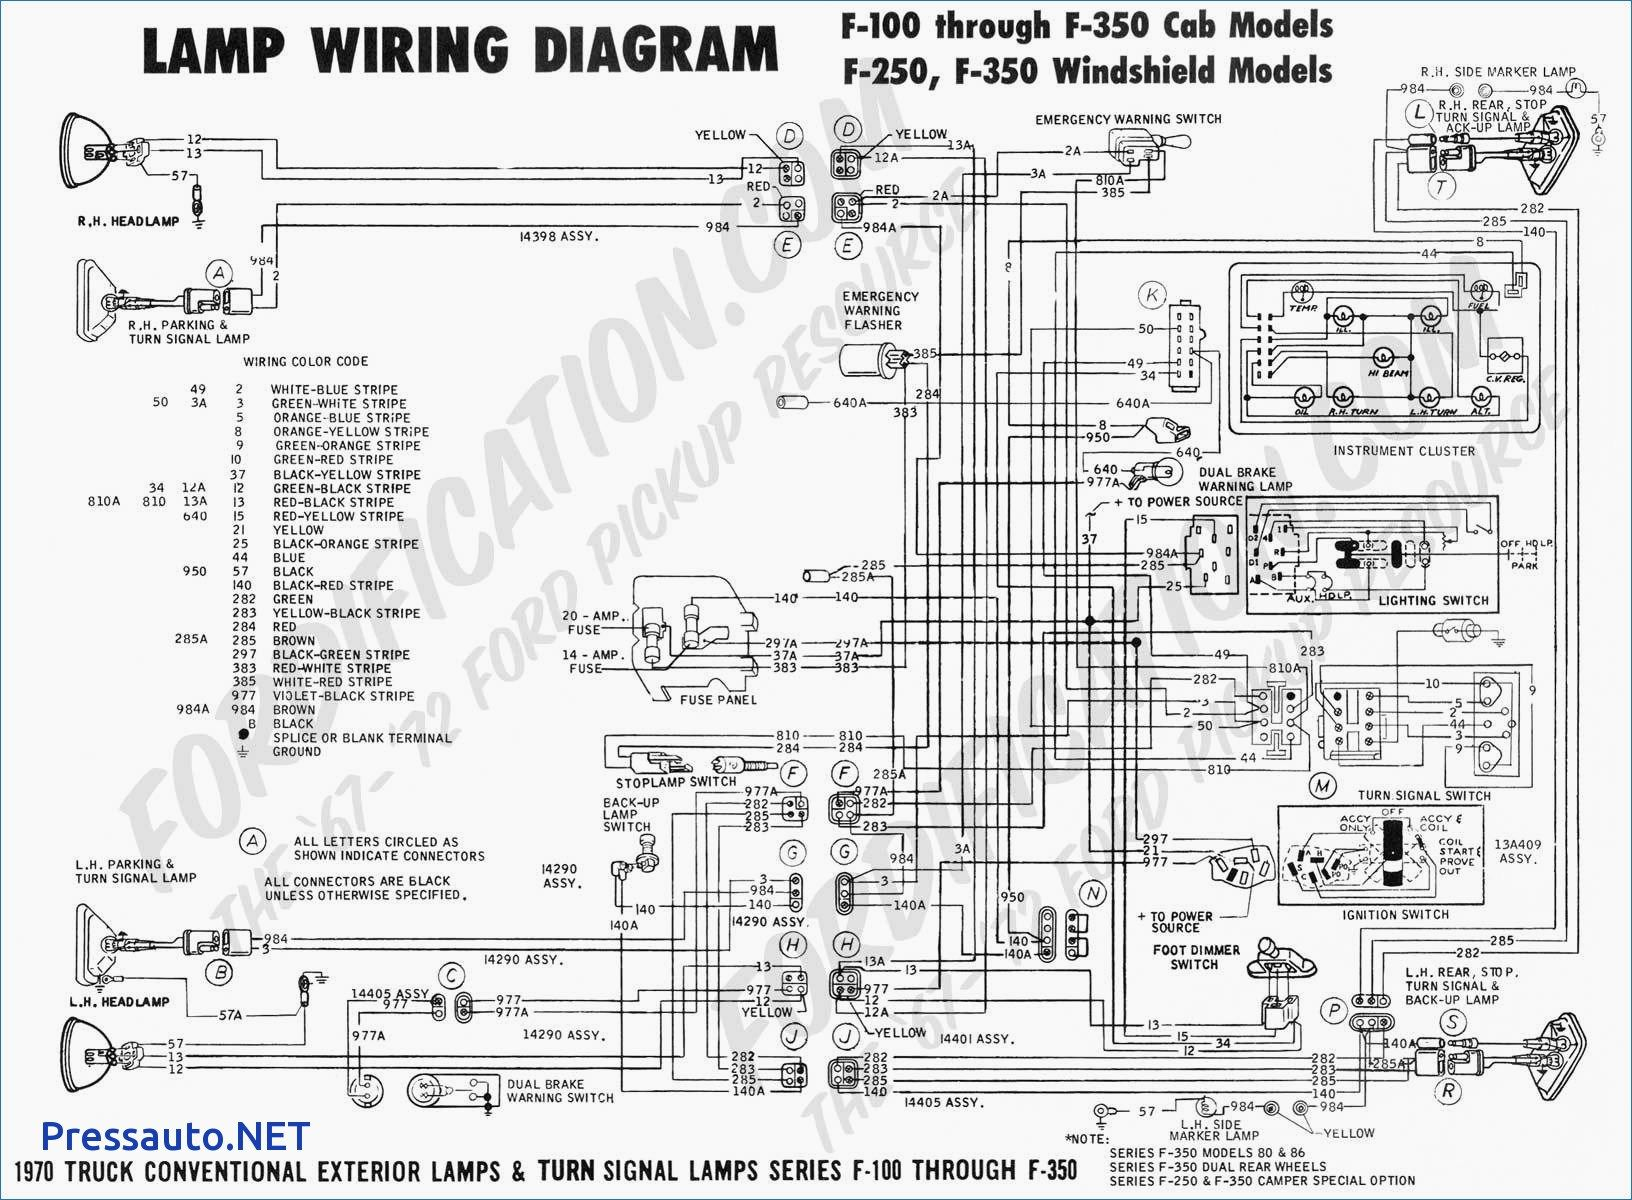 1977 Ford F150 Wiring Diagram | Wiring Diagram  Ford F Wiring Diagram on ford super duty, 1989 ford wiring diagram, ford mirror wiring diagram, 01 dodge 1500 wiring diagram, ford 7 pin wiring diagram, 1987 ford e350 wiring diagram, ford oxygen sensor wiring 1990, ford fairlane wiring diagram, 1956 ford wiring diagram, ford truck electrical diagrams, ford f-350 4x4 wiring diagrams, f250 wiring diagram, 79 ford wiring diagram, ford e 450 wiring diagrams, ford aerostar wiring diagram, ford alternator plug wiring diagram, 86 ford wiring diagram, ford econoline van wiring diagram, ford falcon wiring-diagram, ford electrical wiring diagrams,